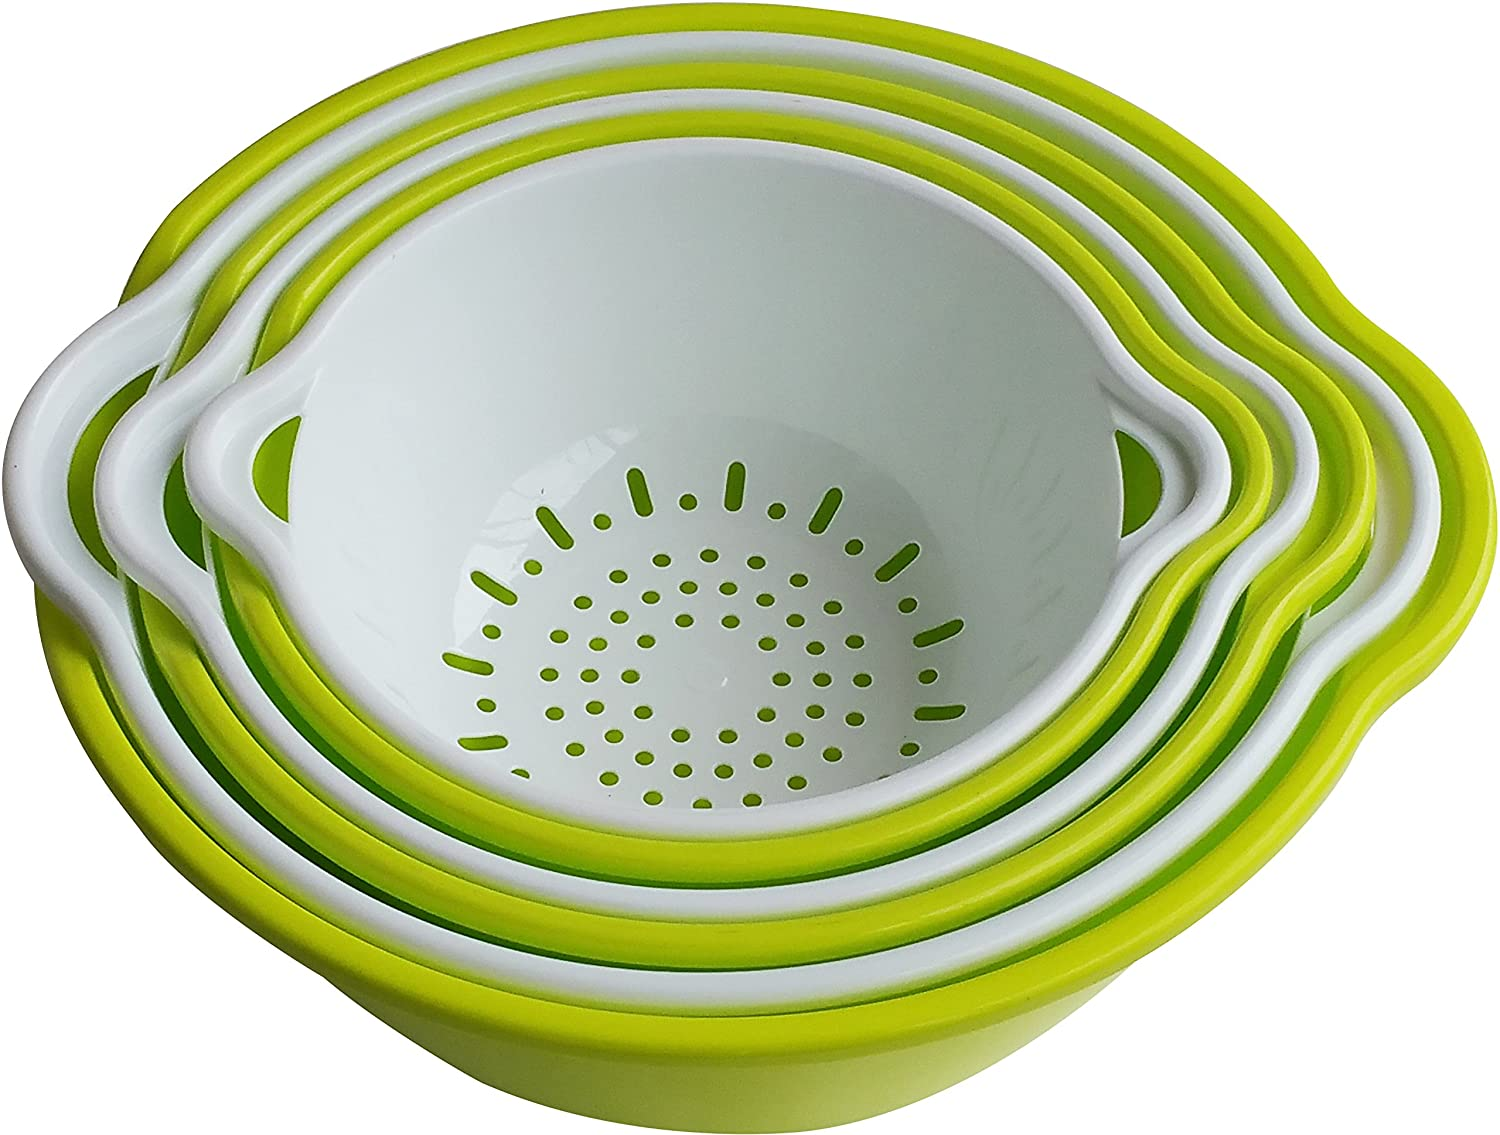 Green /& White Voucchi 6 Piece Mixing Bowls and Nesting Colanders Set